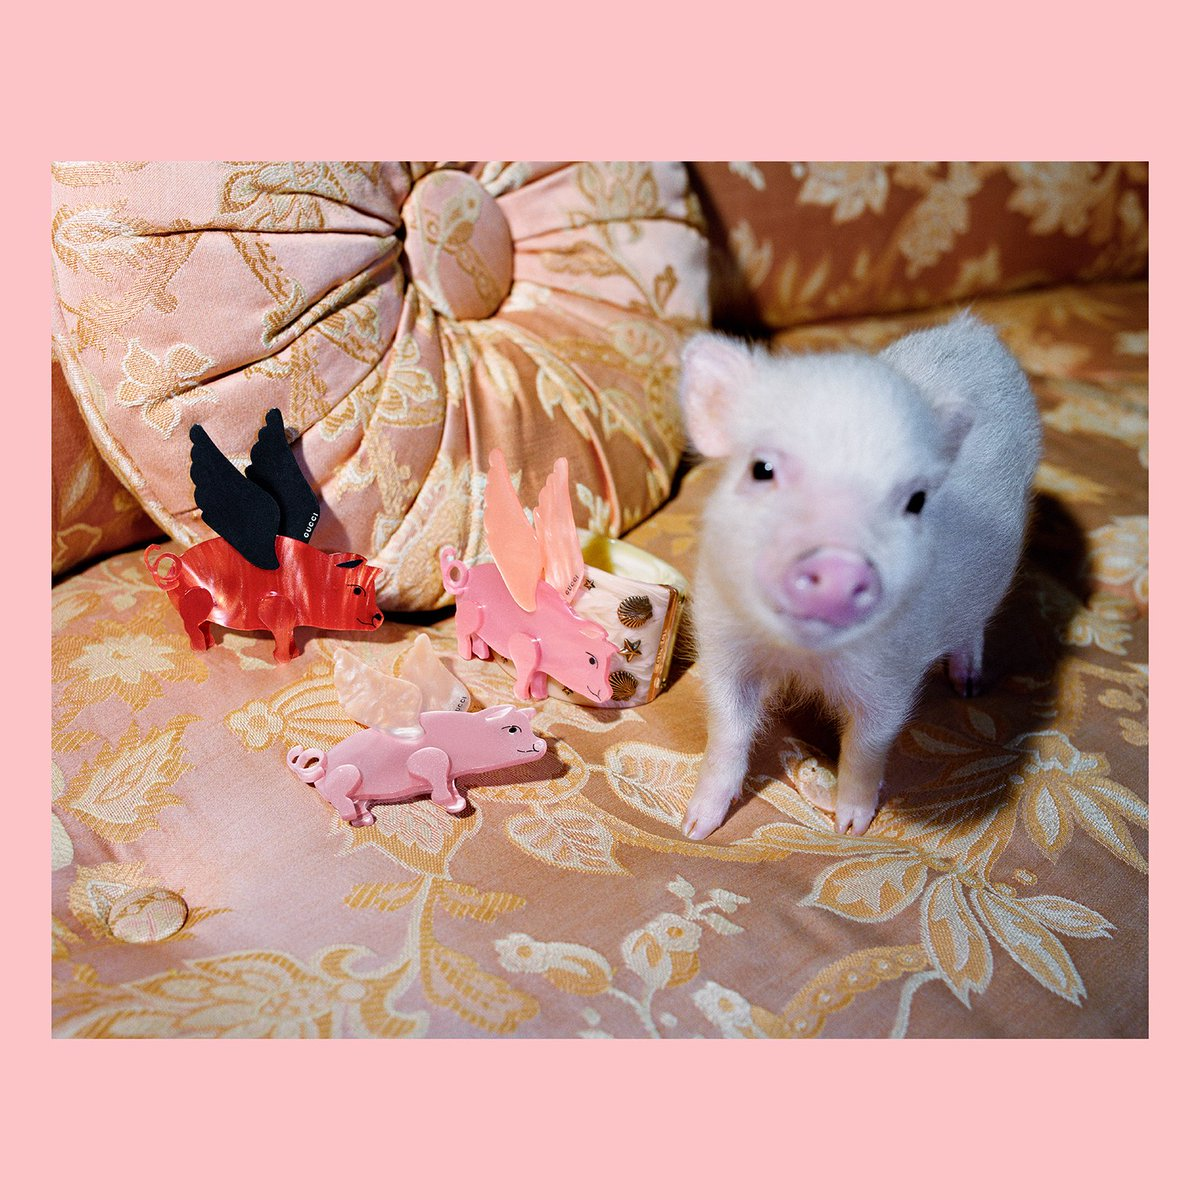 bcdfb7e4748be7 Flying pig brooches are next to a tiny piglet, part of the #Gucci collection